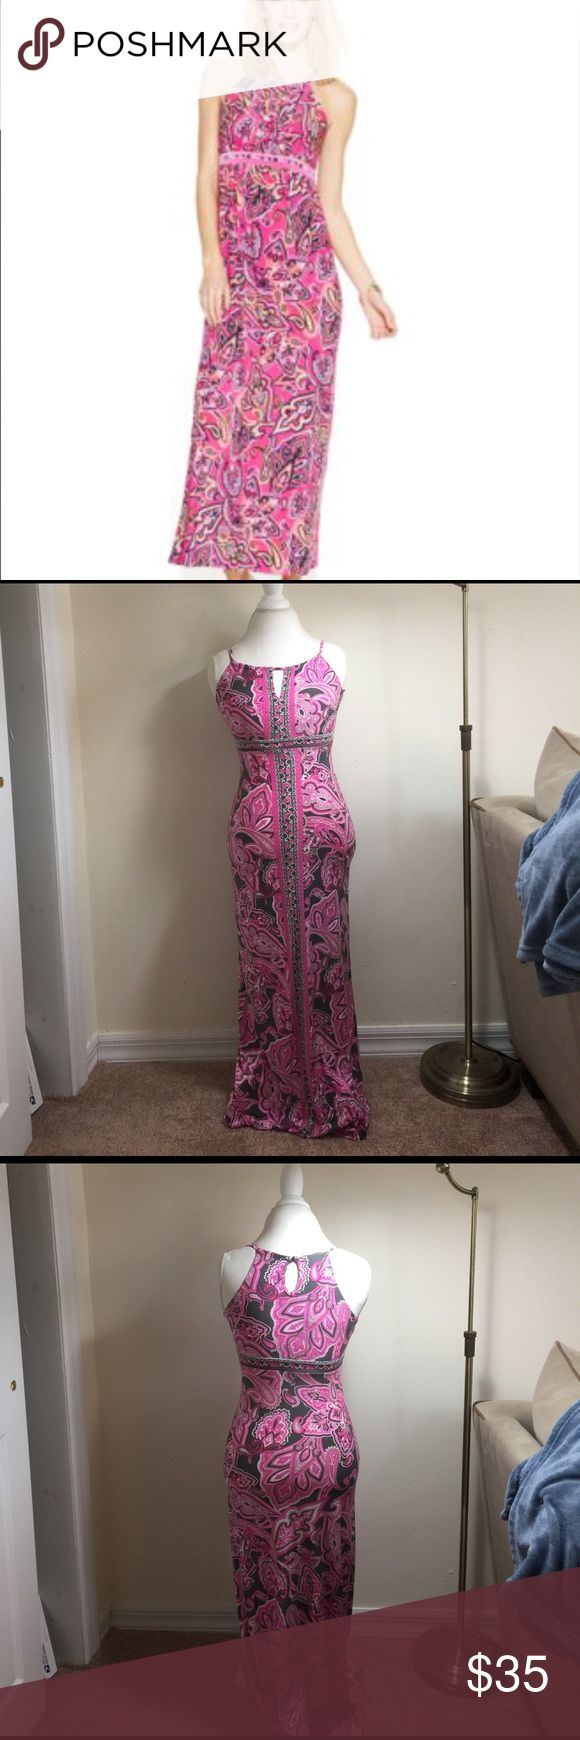 """INC International Concepts Maxi Dress Petite Silky smooth fabric 95% polyester 5% spandex. Paisley print pattern in hot pink, light pink, dark gray, light gray, and white. High neck and buttons at back of neck . No padding in bust . 48"""" shoulder to bottom. 13"""" armpit to armpit. I'm five feet and it doesn't need hemming for me. Size on label is P/P. It fits like an XS Petite. INC International Concepts Dresses Maxi"""